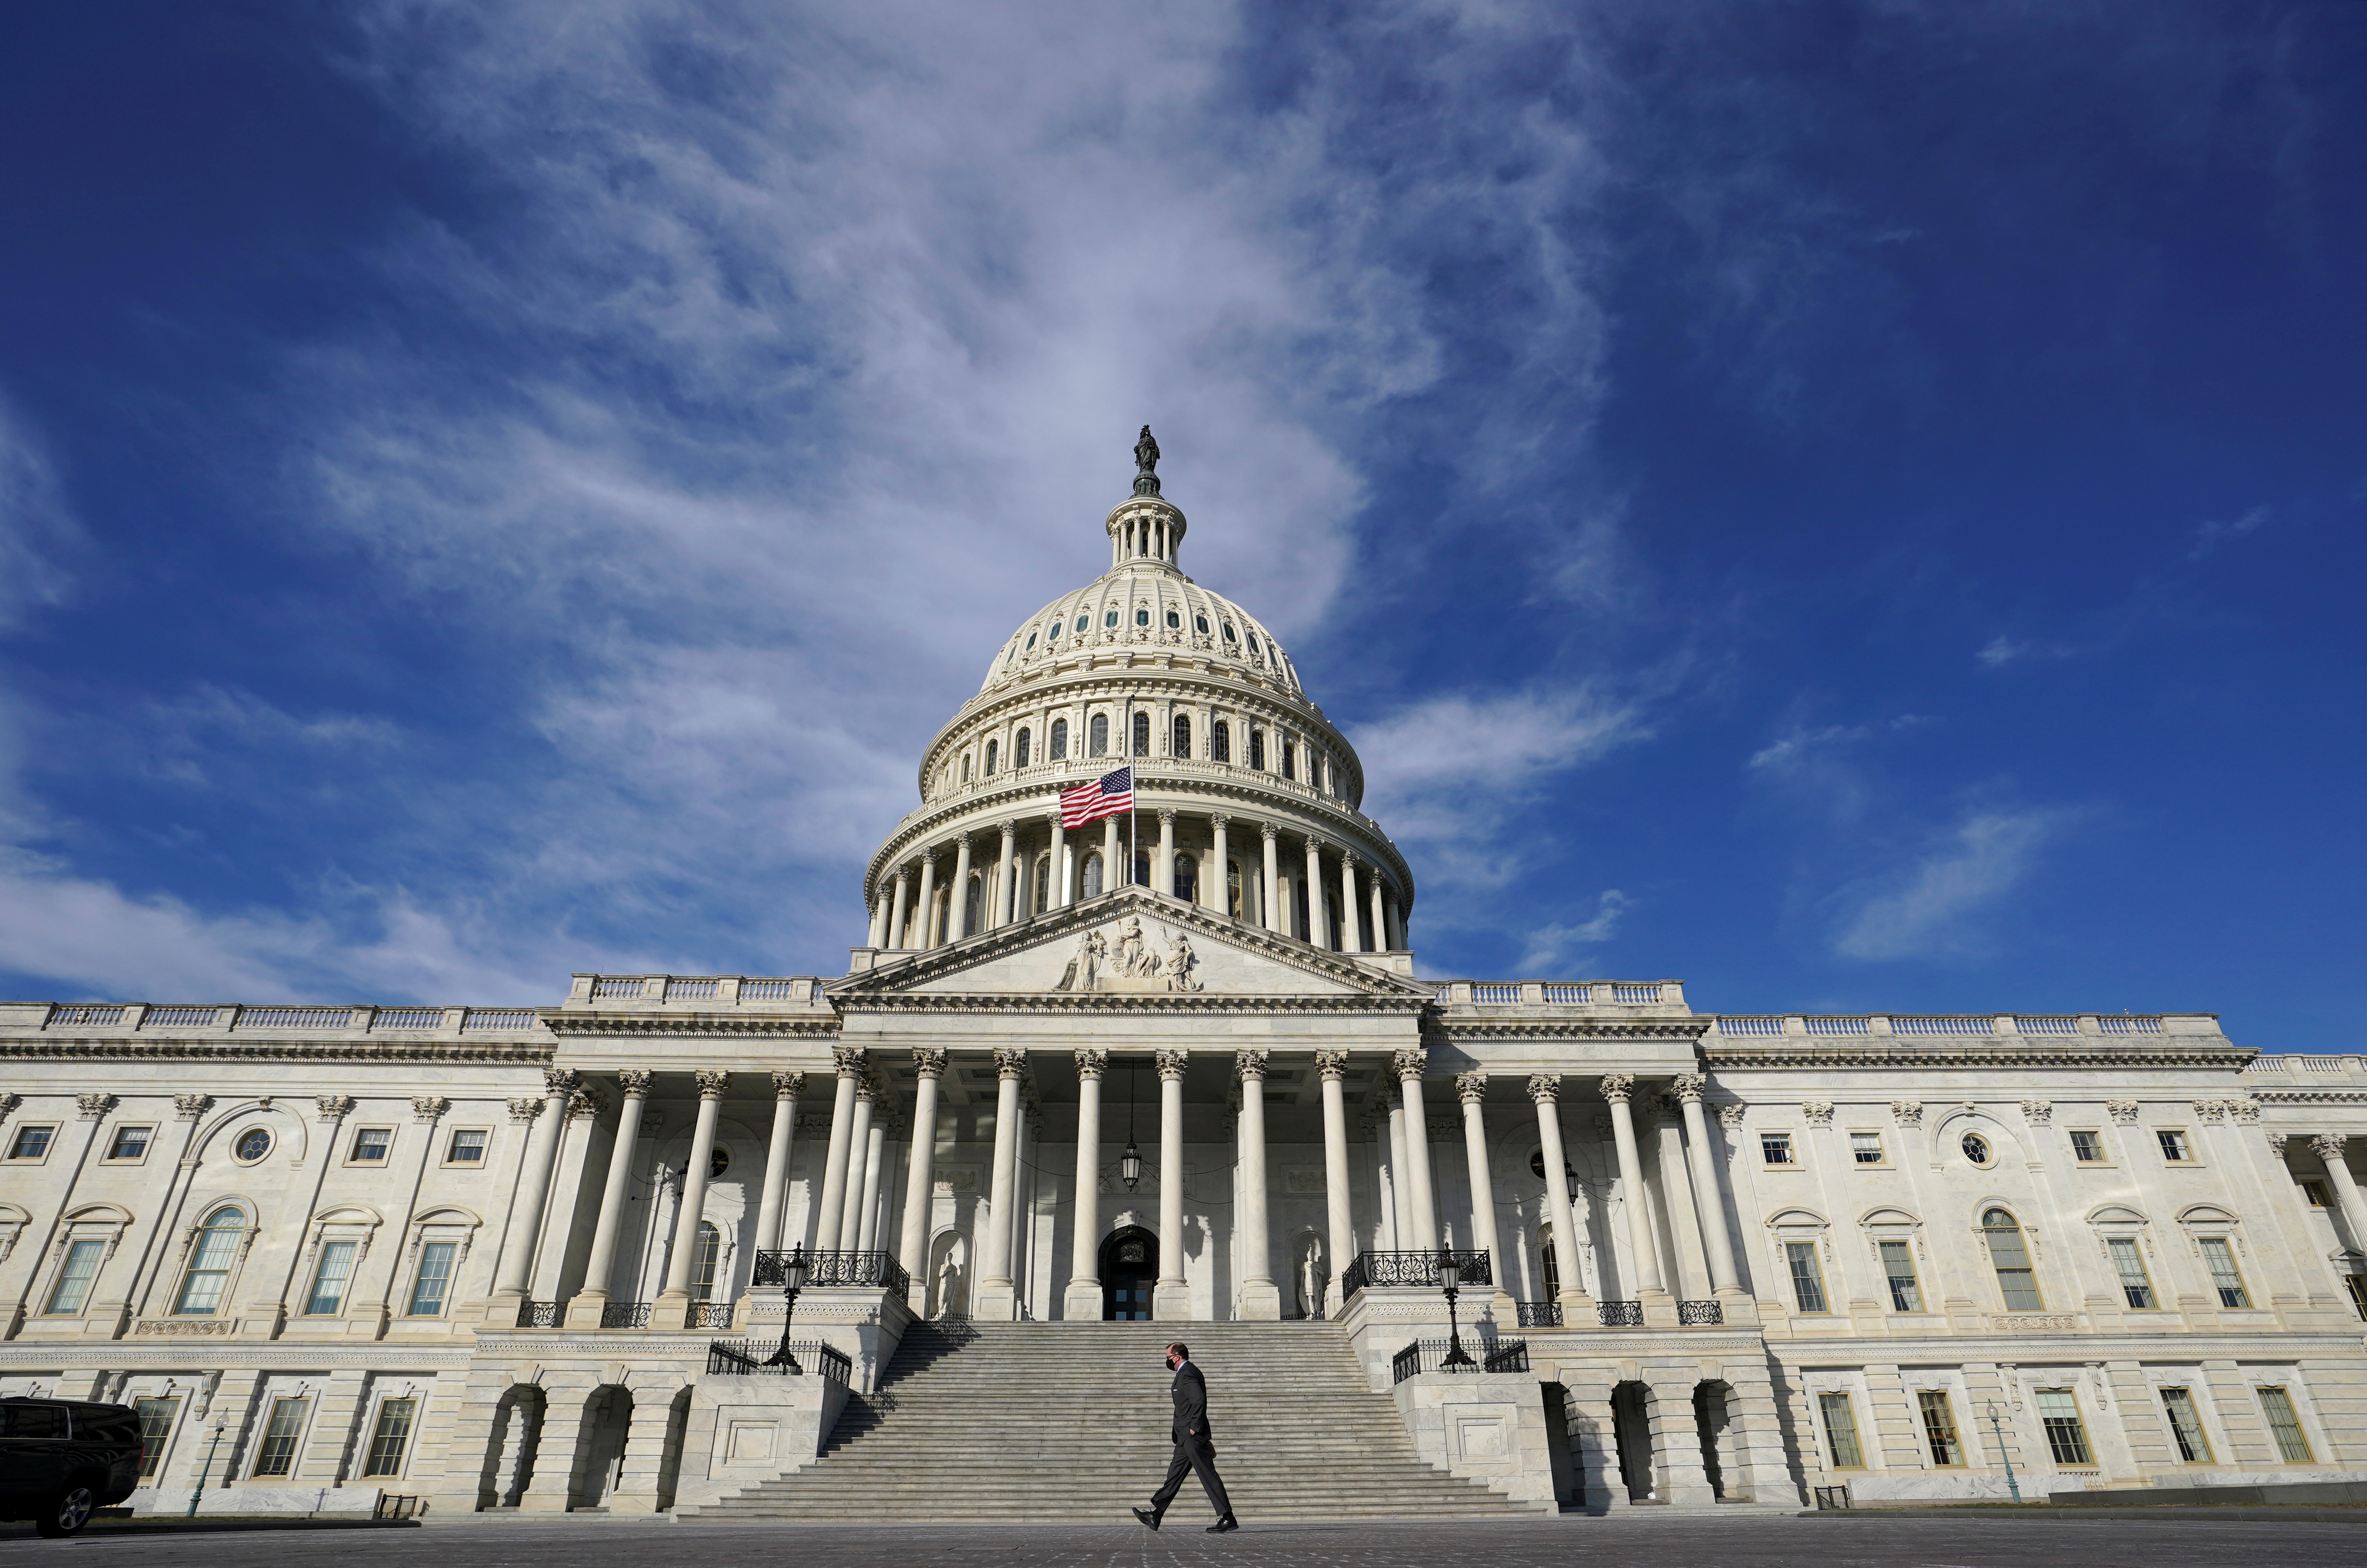 A man makes his way past the U.S. Capitol in Washington, U.S., February 26, 2021. REUTERS/Kevin Lamarque/File Photo